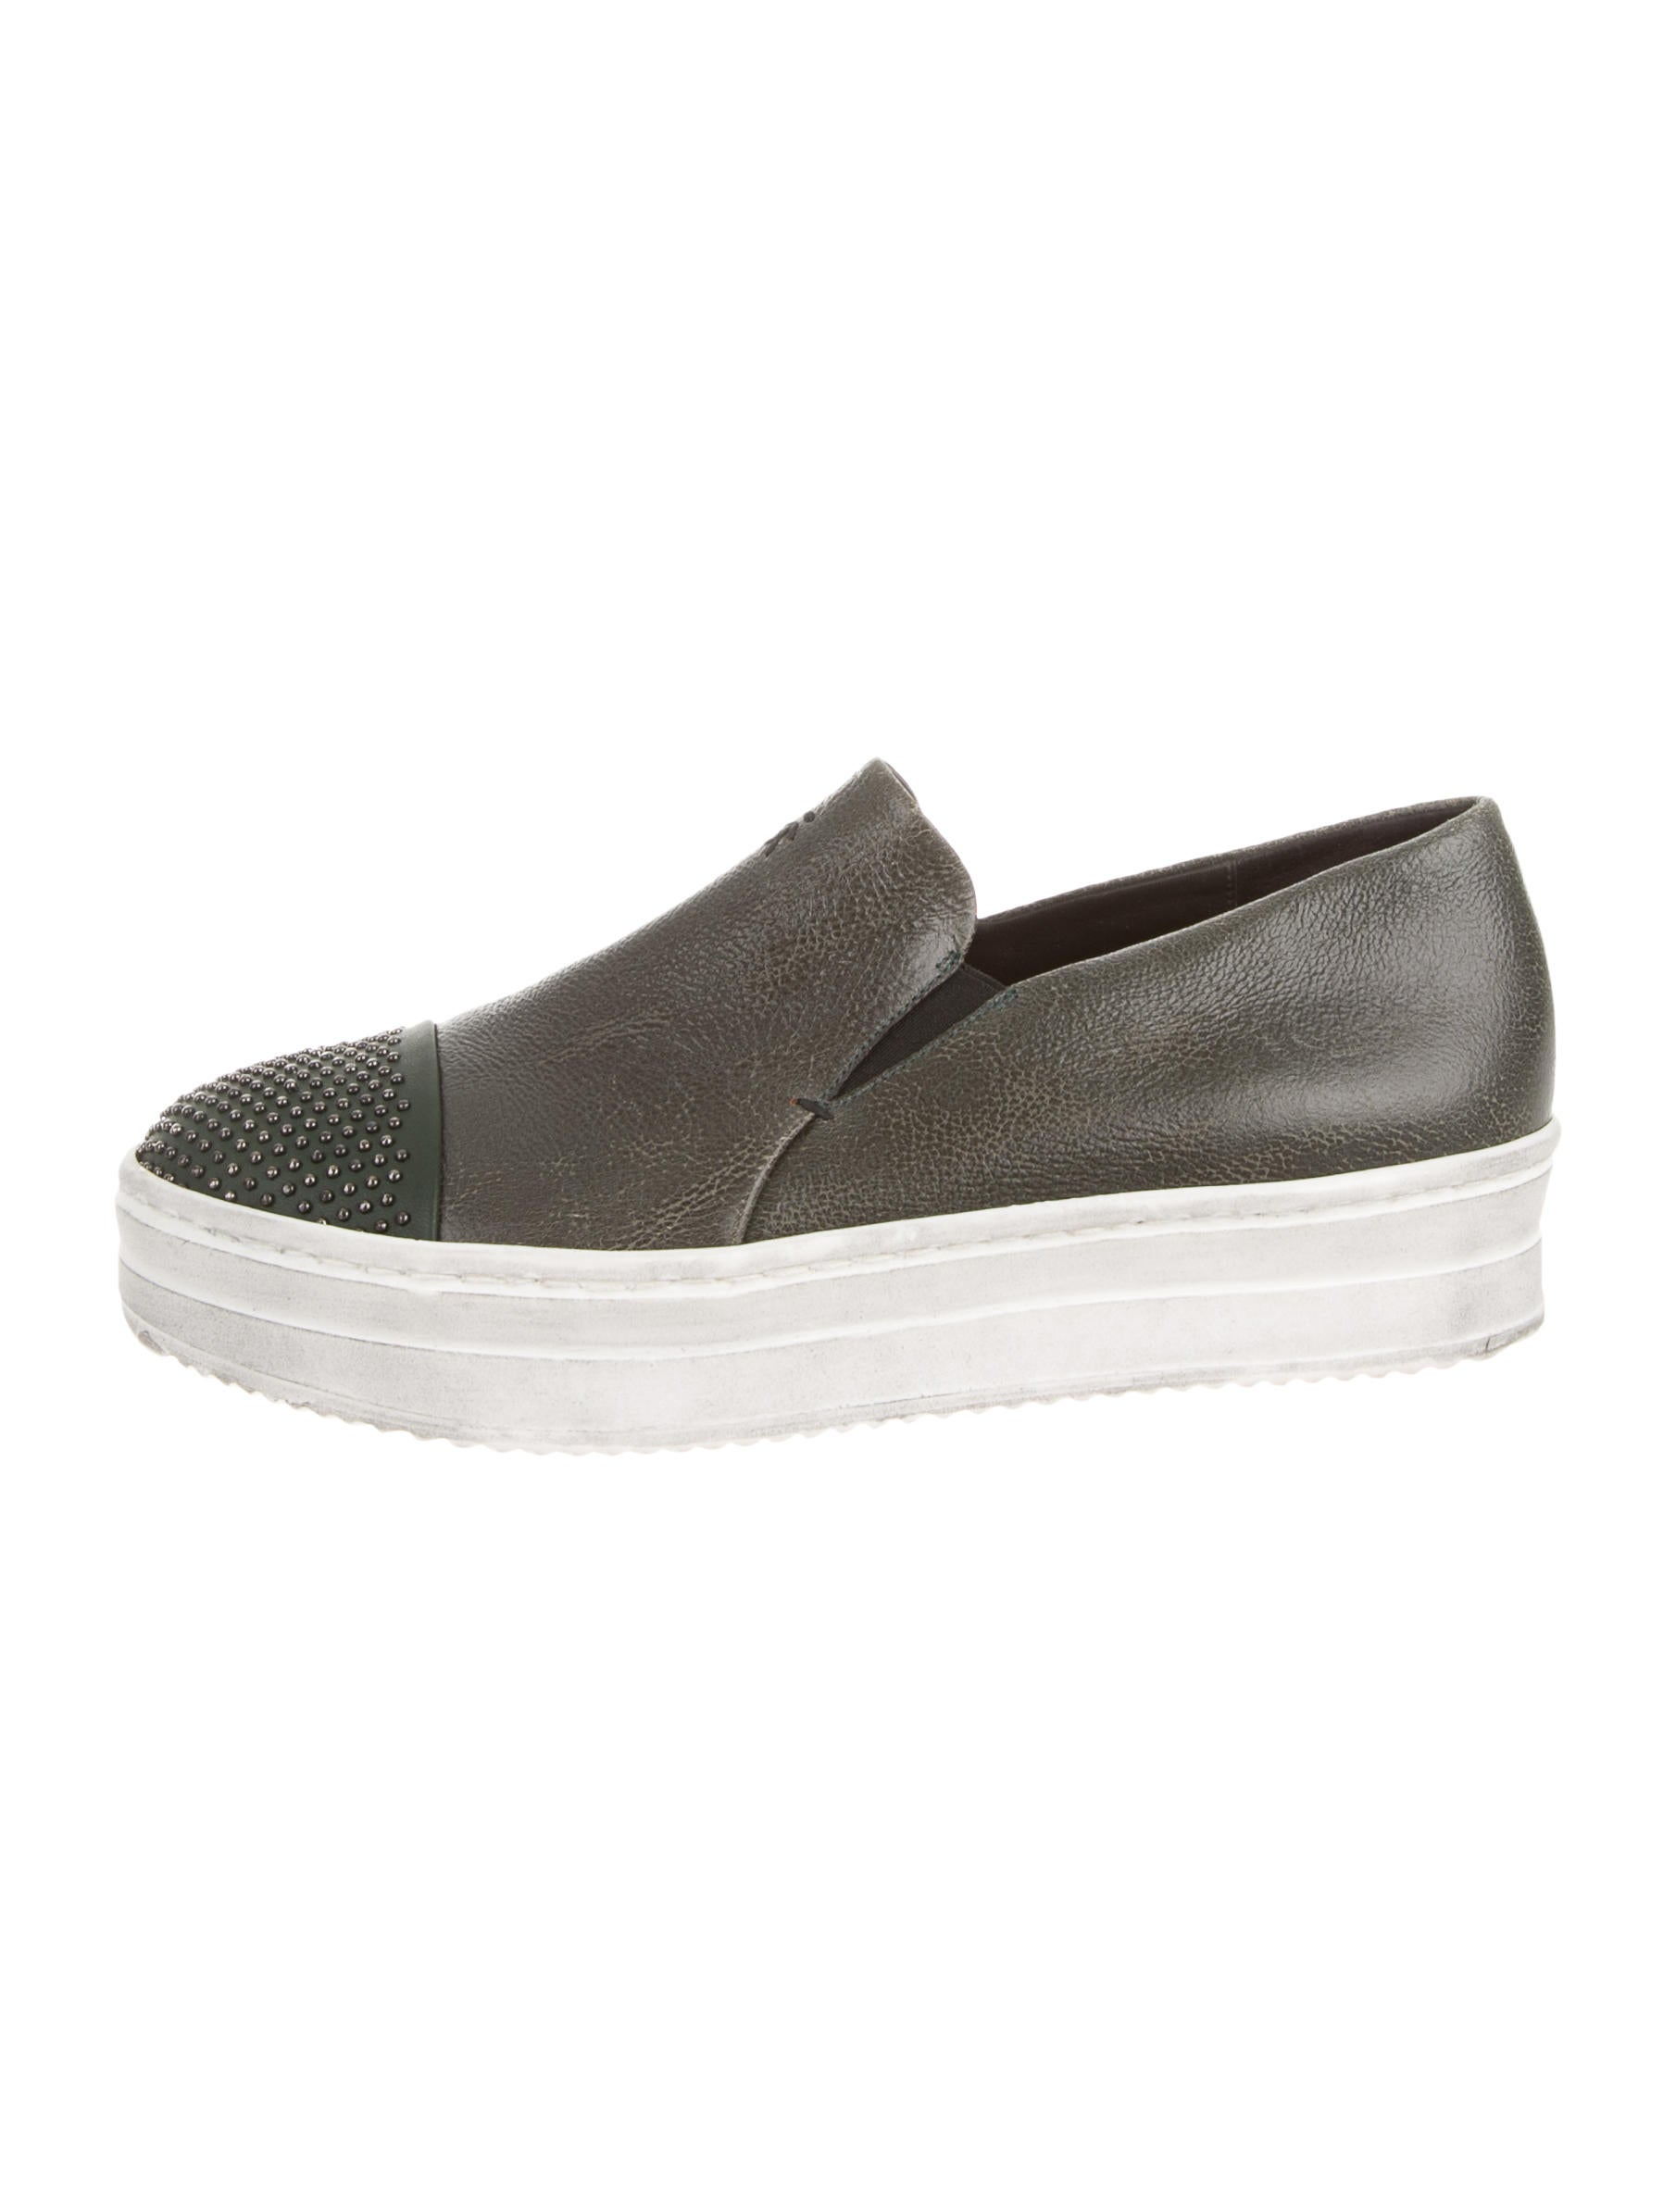 pictures online Henry Beguelin Leather Slip-On Sneakers w/ Tags cheap online shop cheap sale Manchester zdUw6IFw